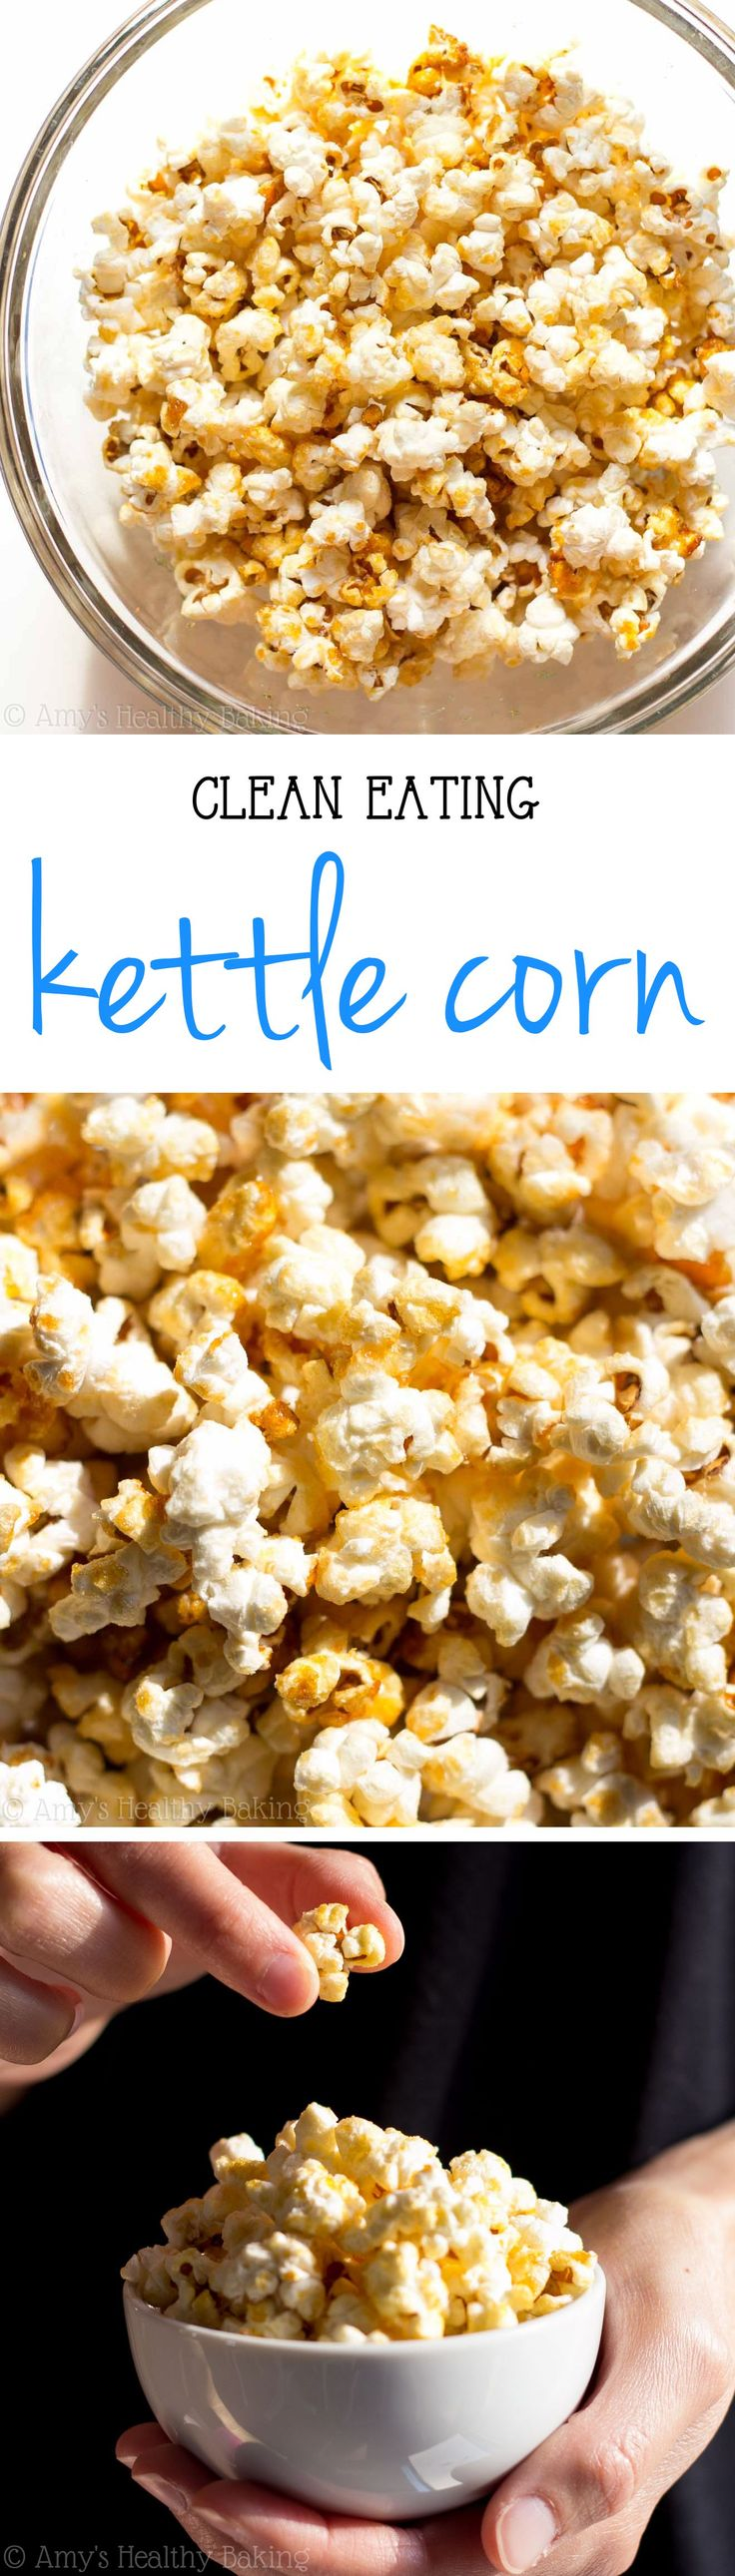 Skinny & Clean-Eating Kettle Corn -- you only need 4 ingredients & 15 minutes to make this easy treat at home! Barely 130 calories in each HUGE serving!